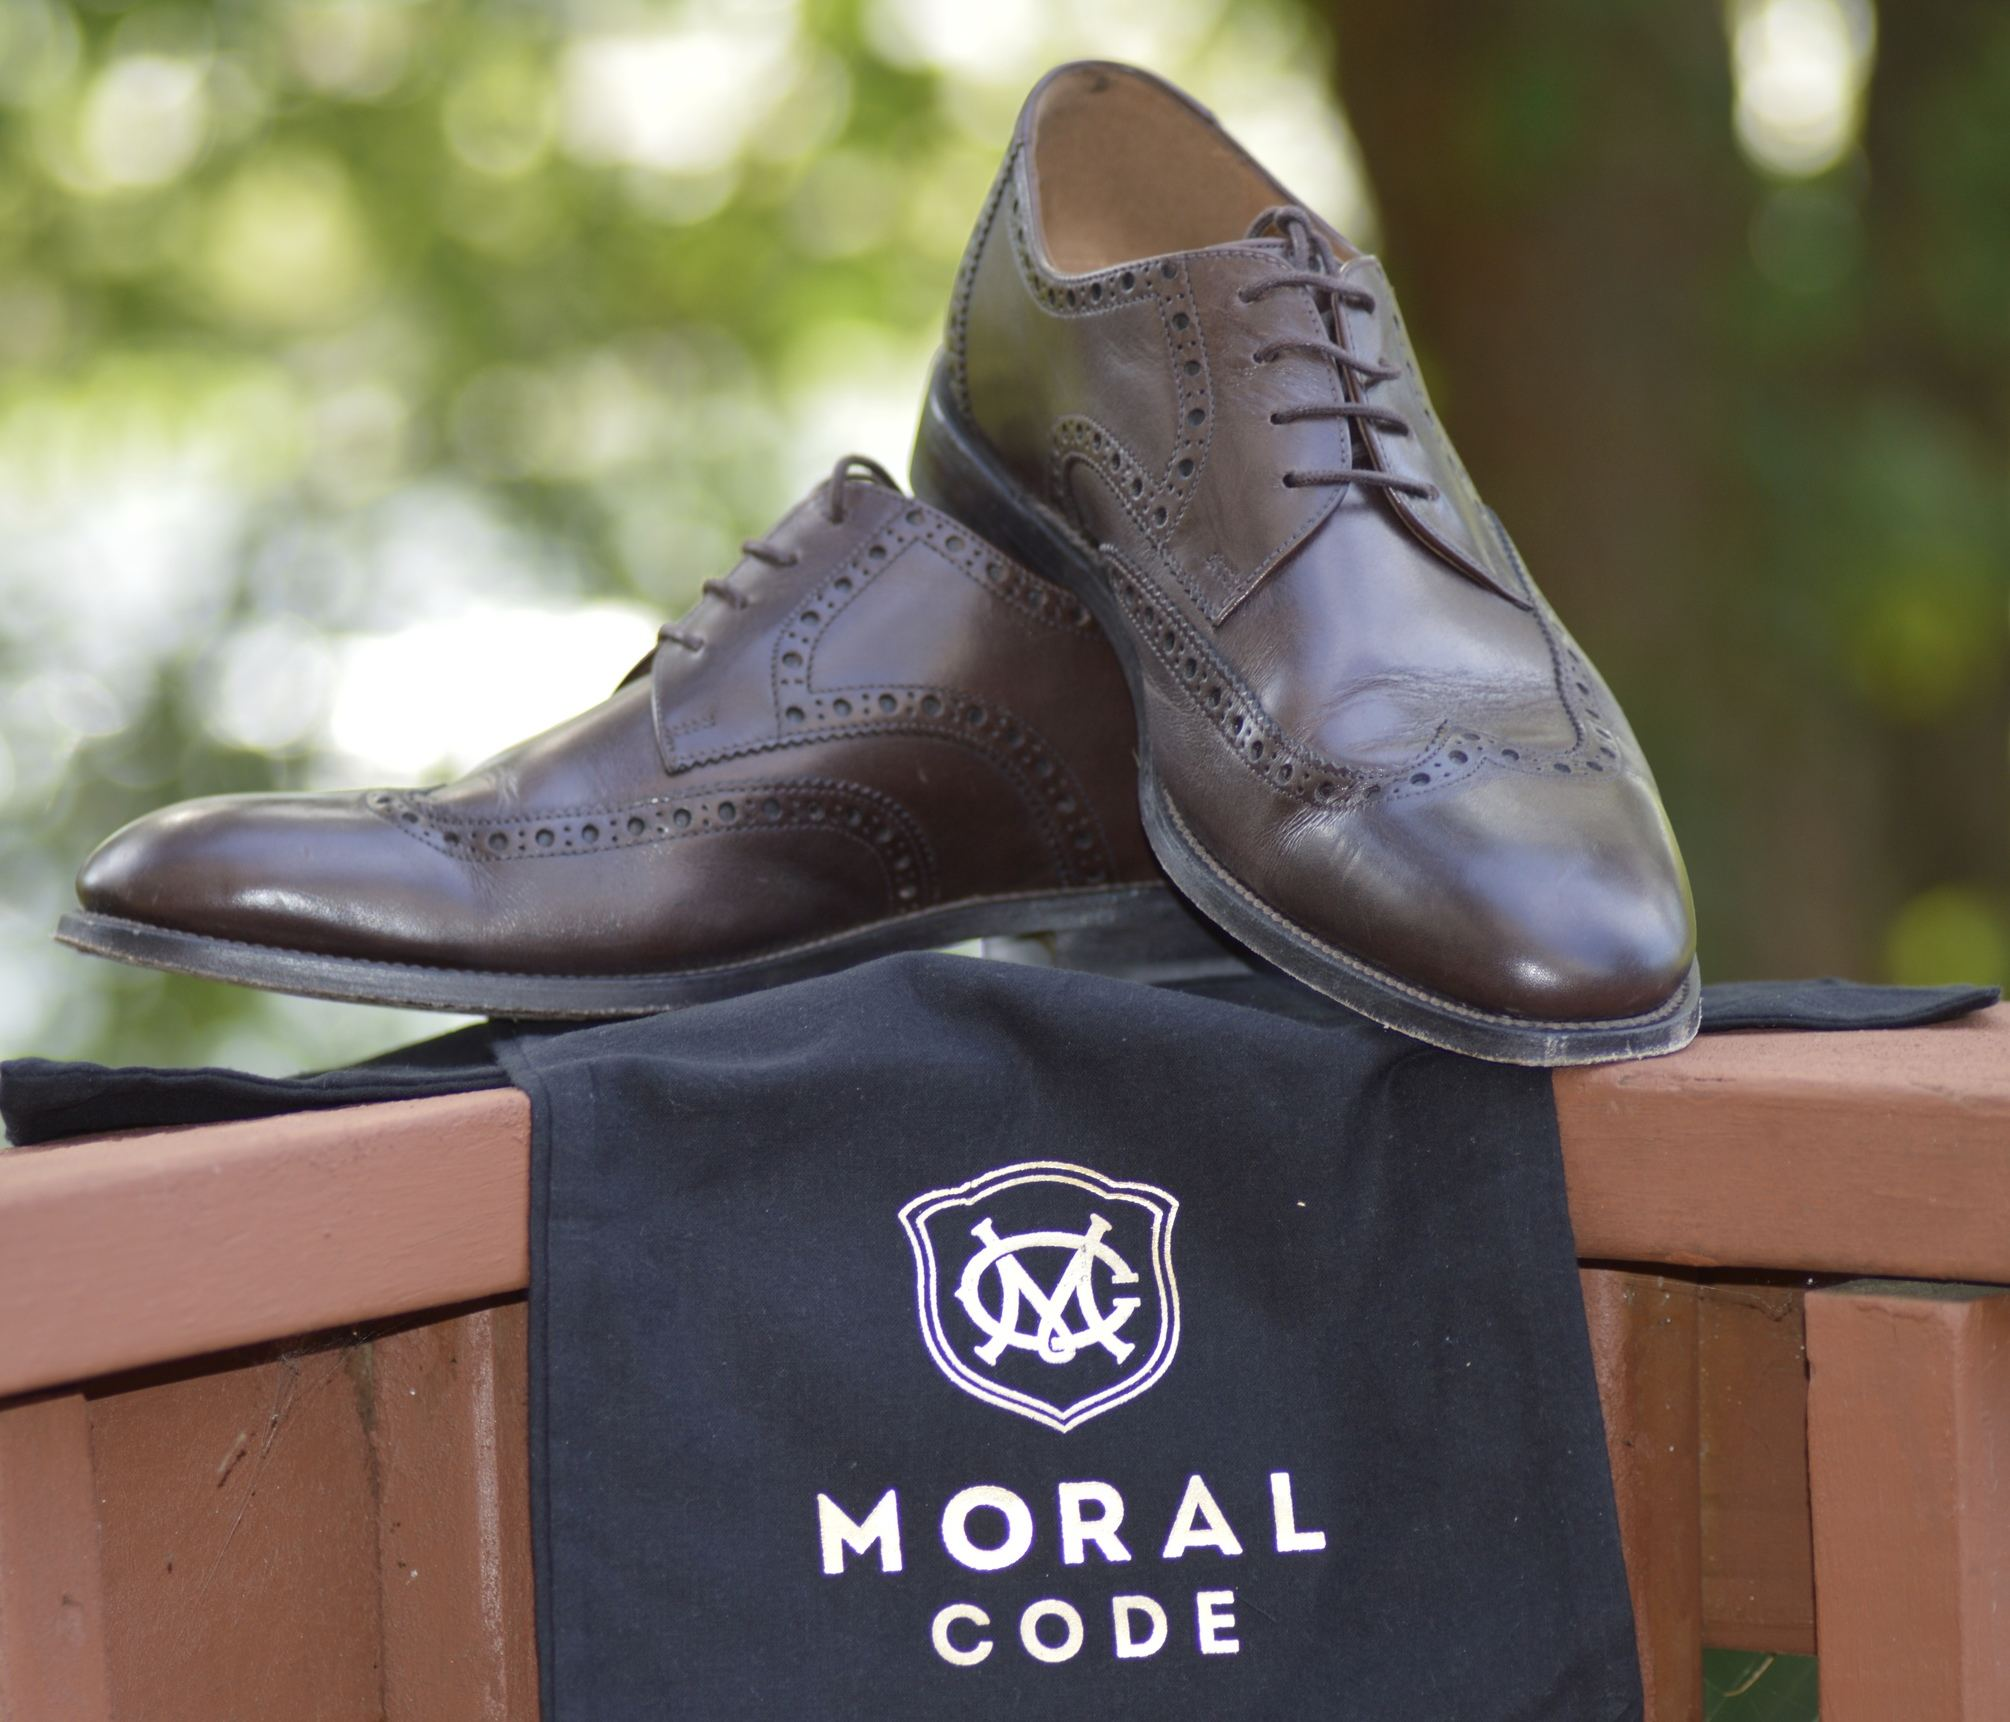 Moral Code Brogued Dress Shoes